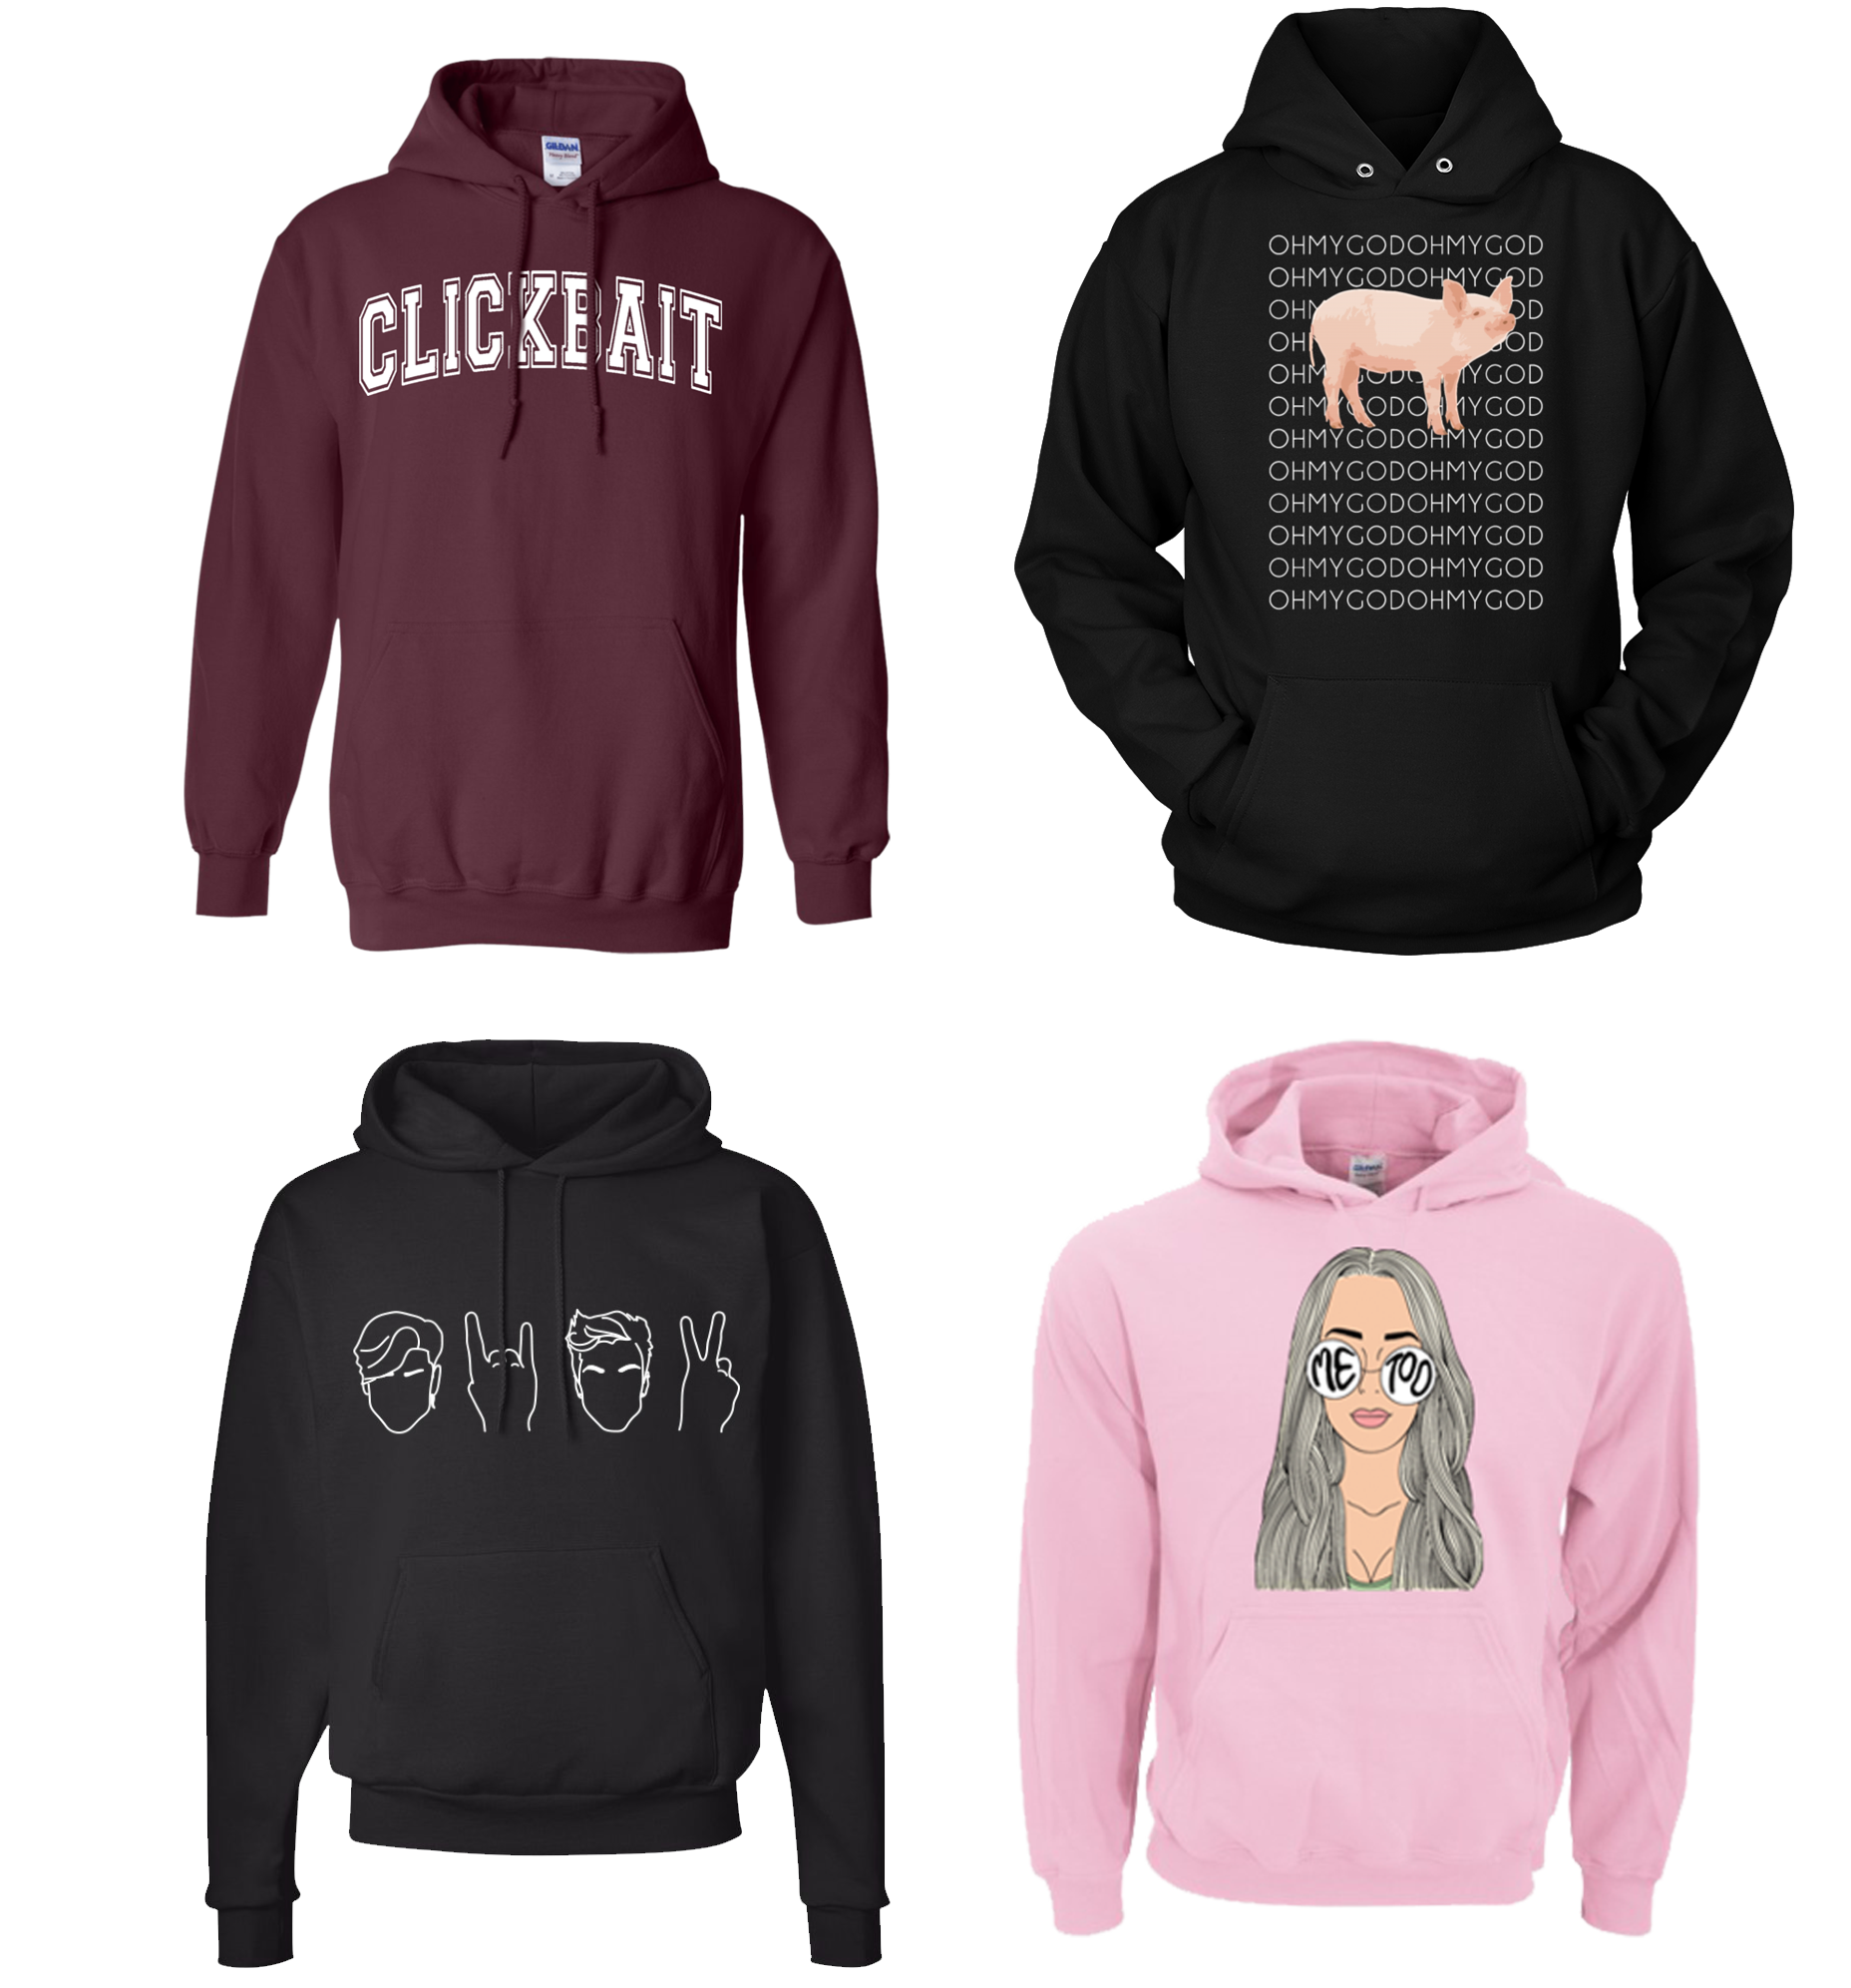 yt merch collage.png